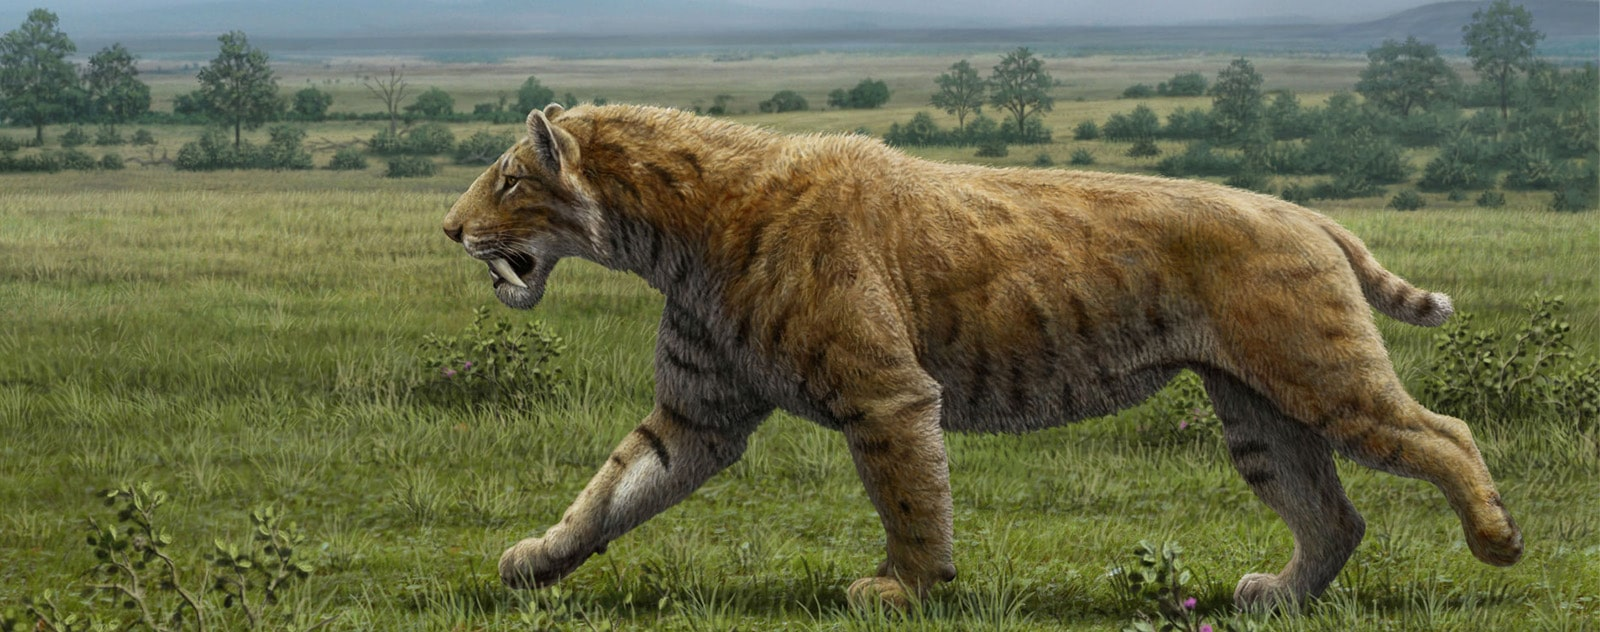 Reconstitution du Smilodon avant son extinction